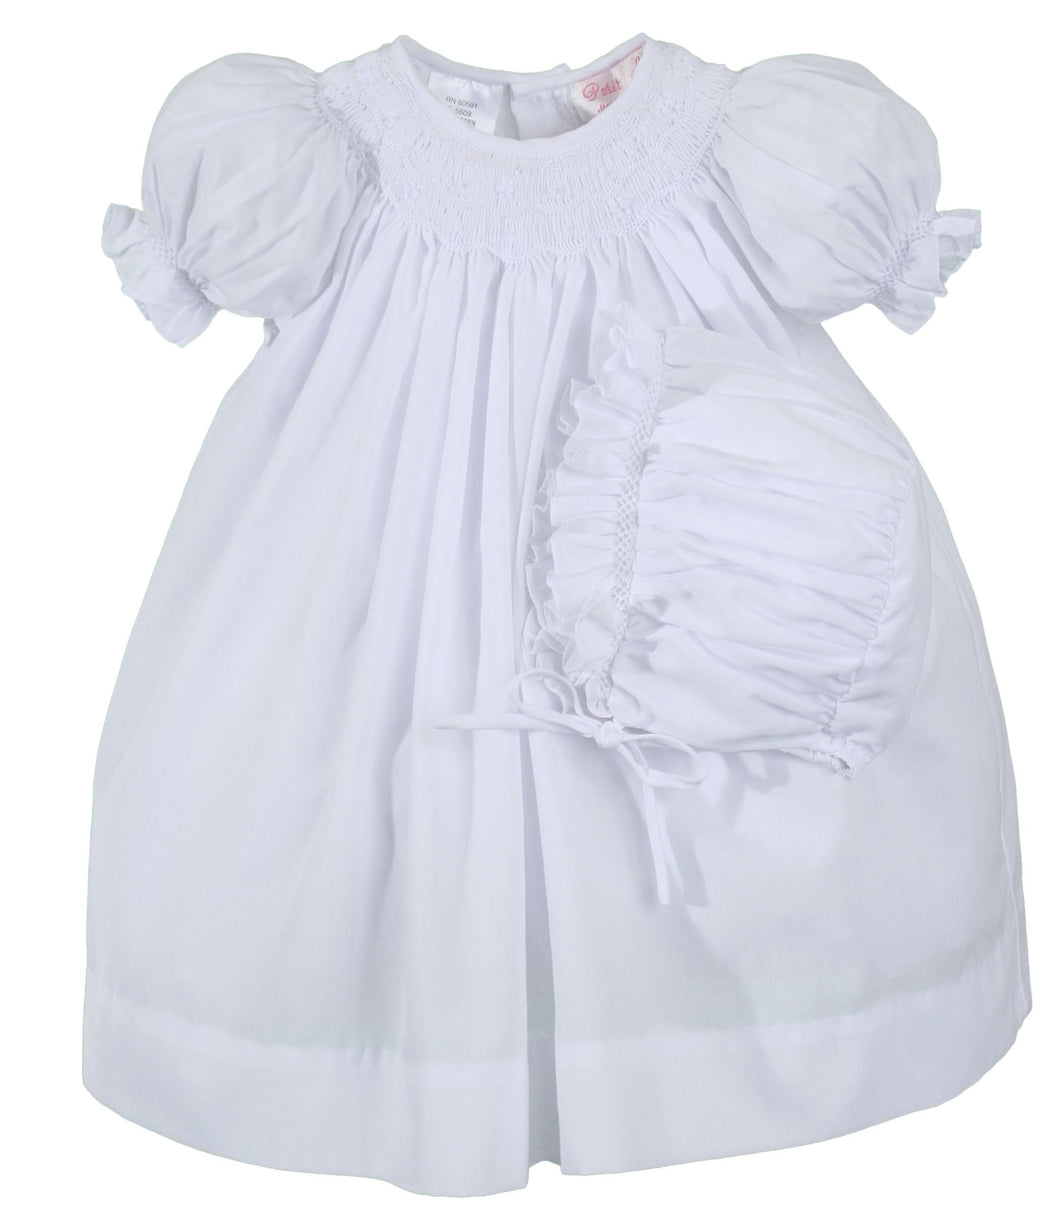 White Smocked Daydress with Bonnet